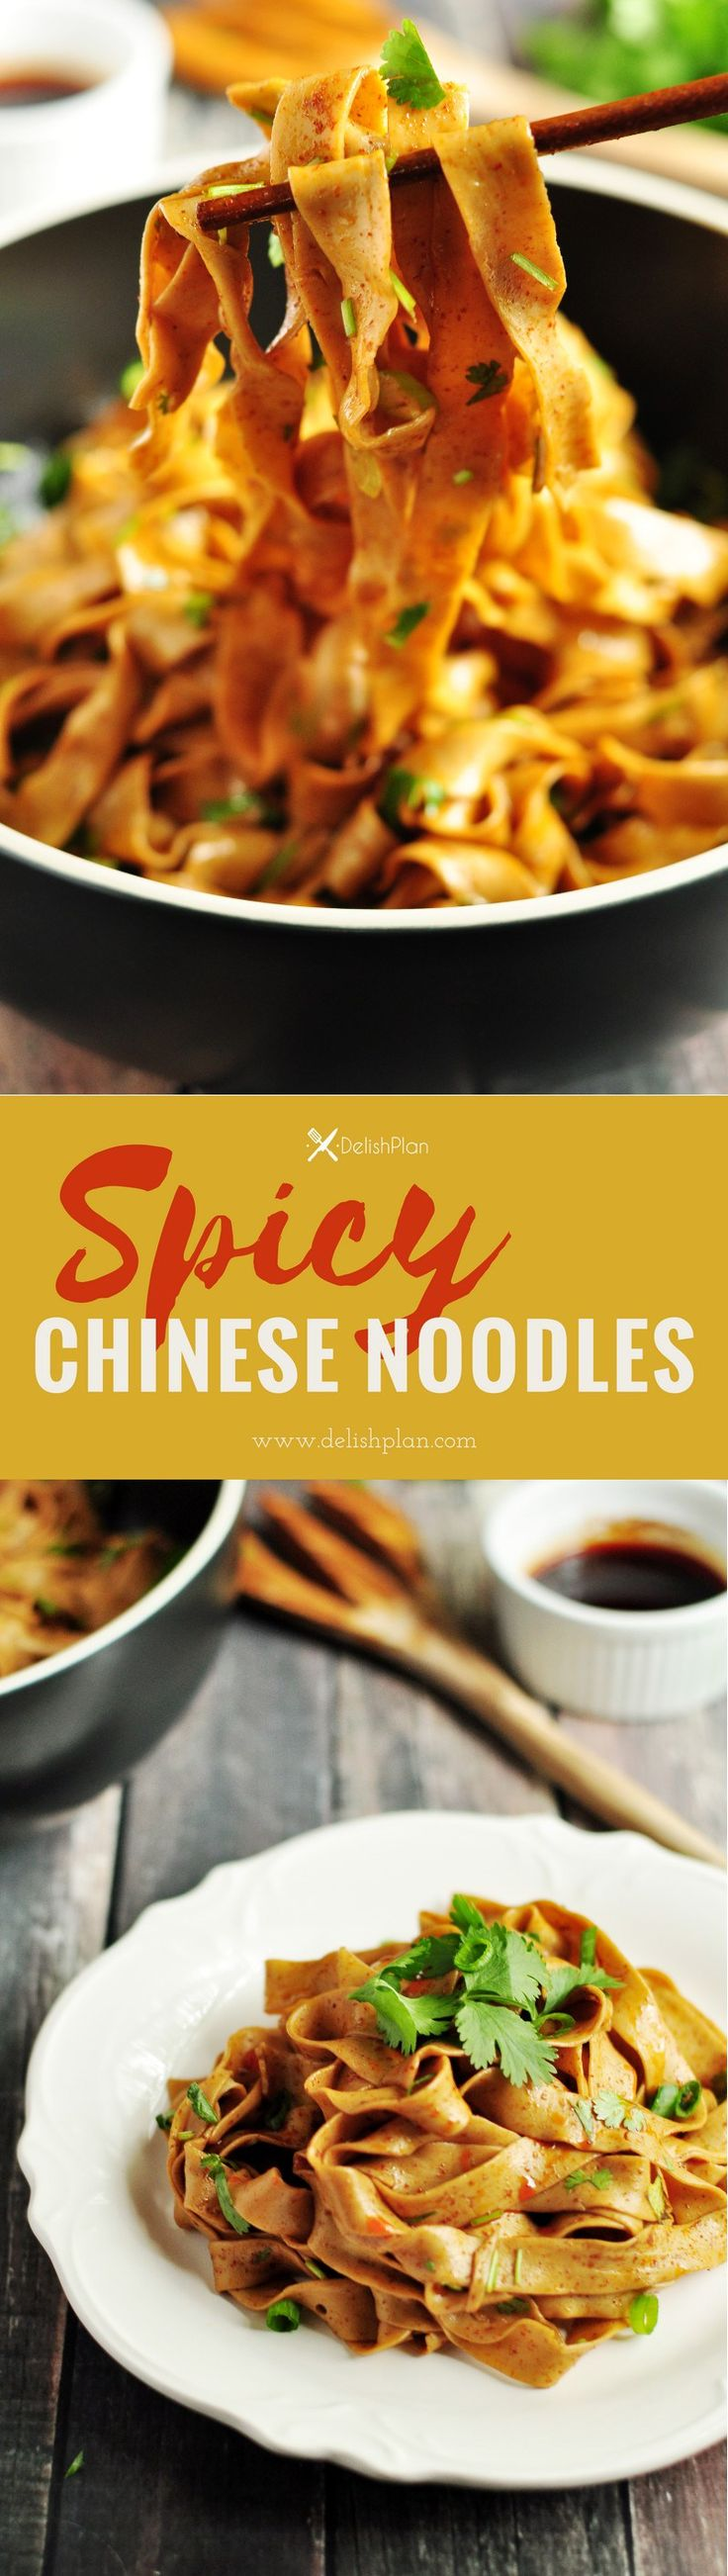 These mouthwatering spicy Chinese noodles are the most savory and irresistible noodles you'll ever have. It only requires six ingredients. Make and slurp!